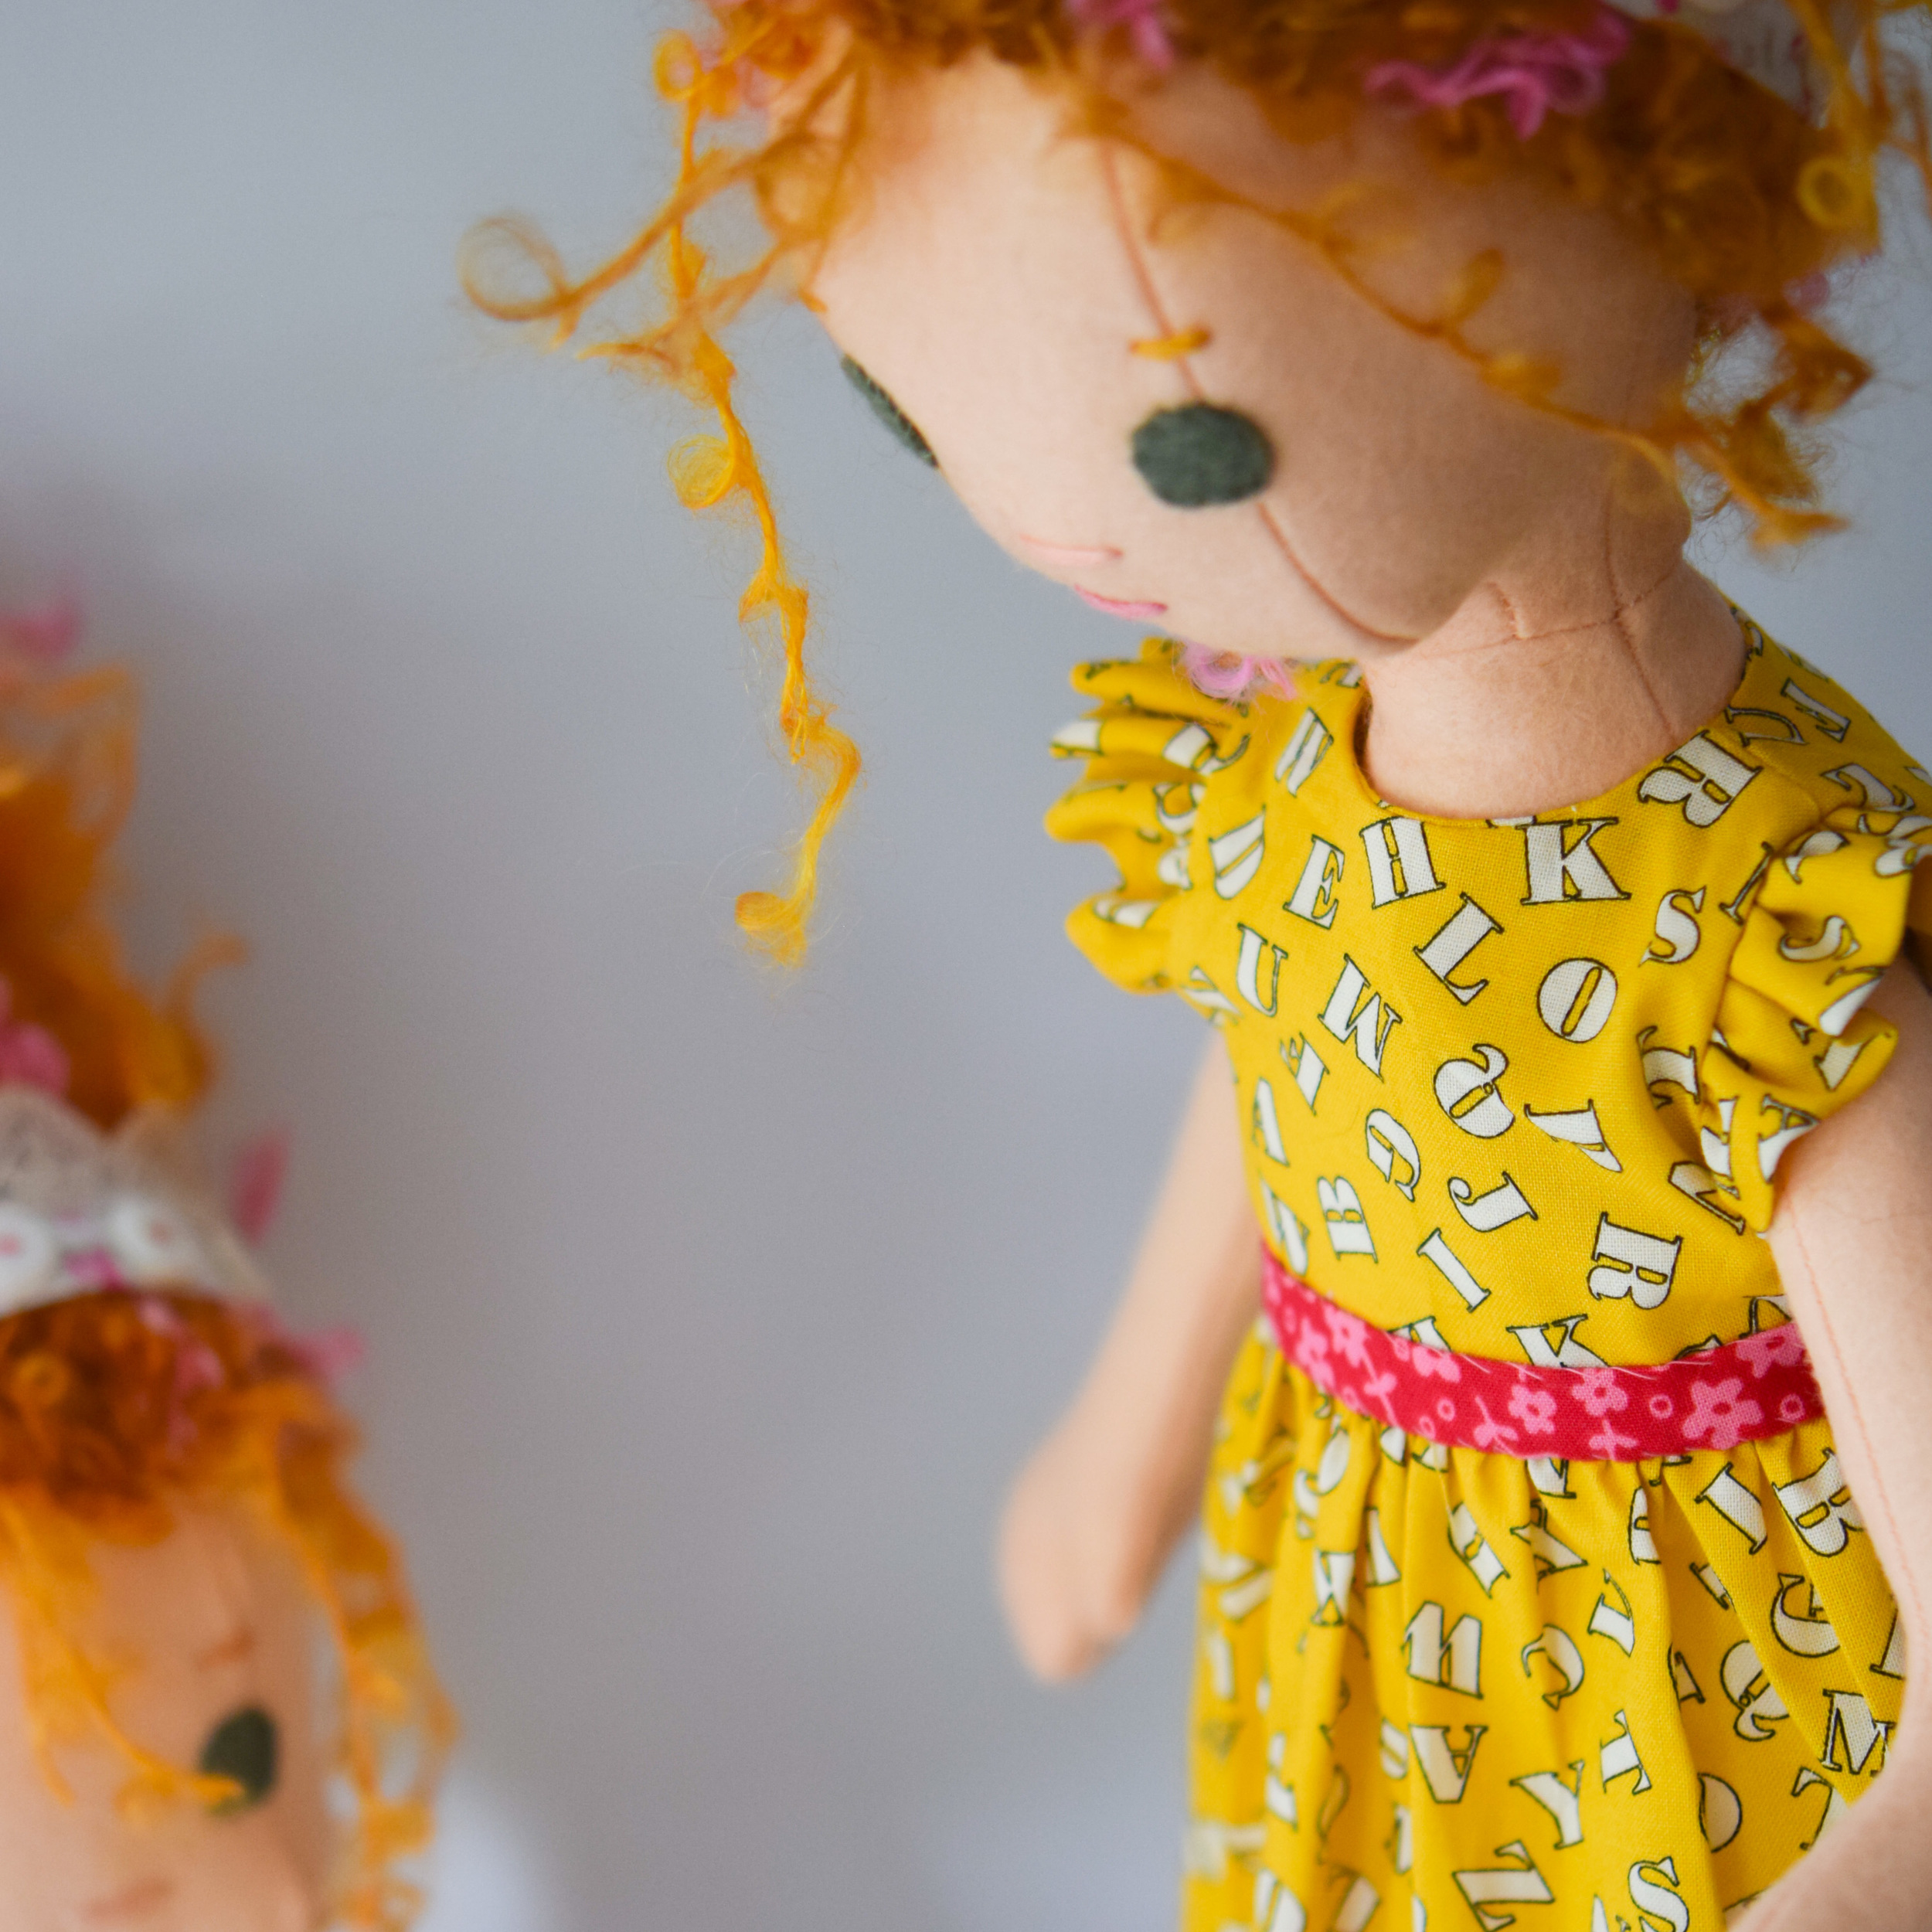 Two Fancy Nancy dolls